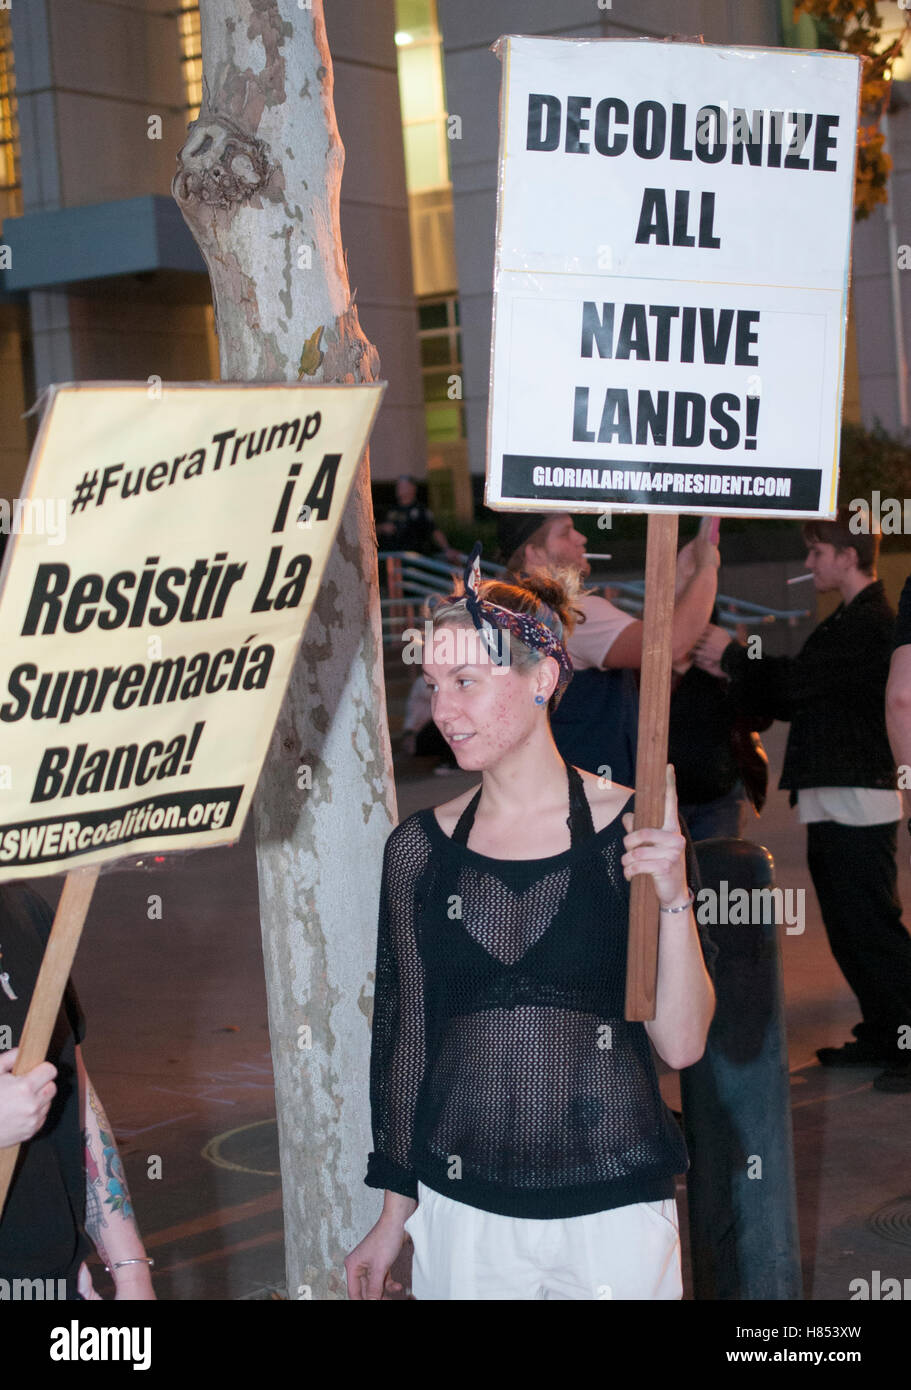 """An activist holds a sign reading """"Decolonize all native lands"""" at a protest against the 2016 election results. Credit: - Stock Image"""